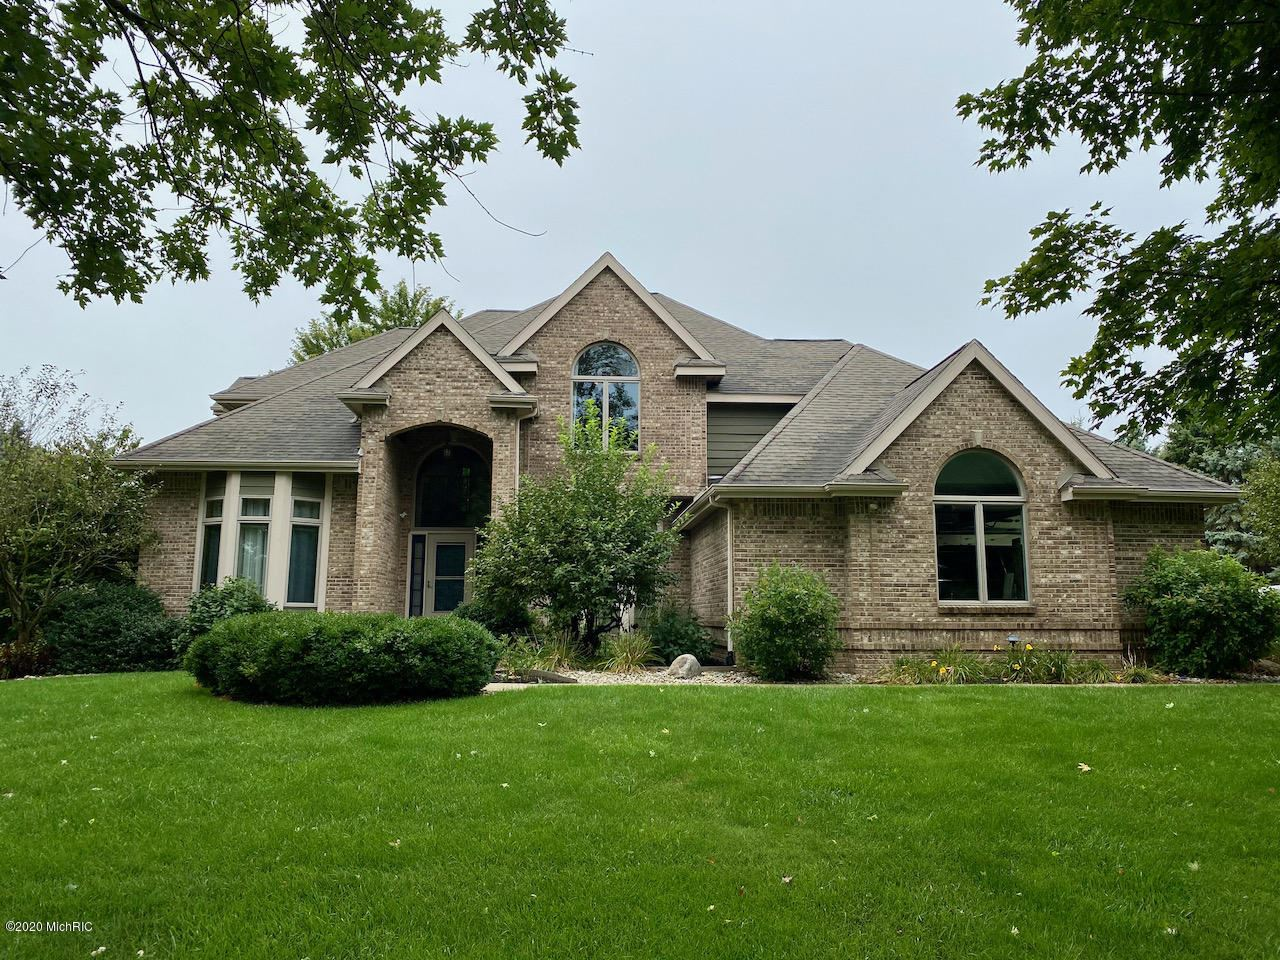 2163 Cross Country Drive, Kalamazoo, MI 49009 - MLS#: 20038739